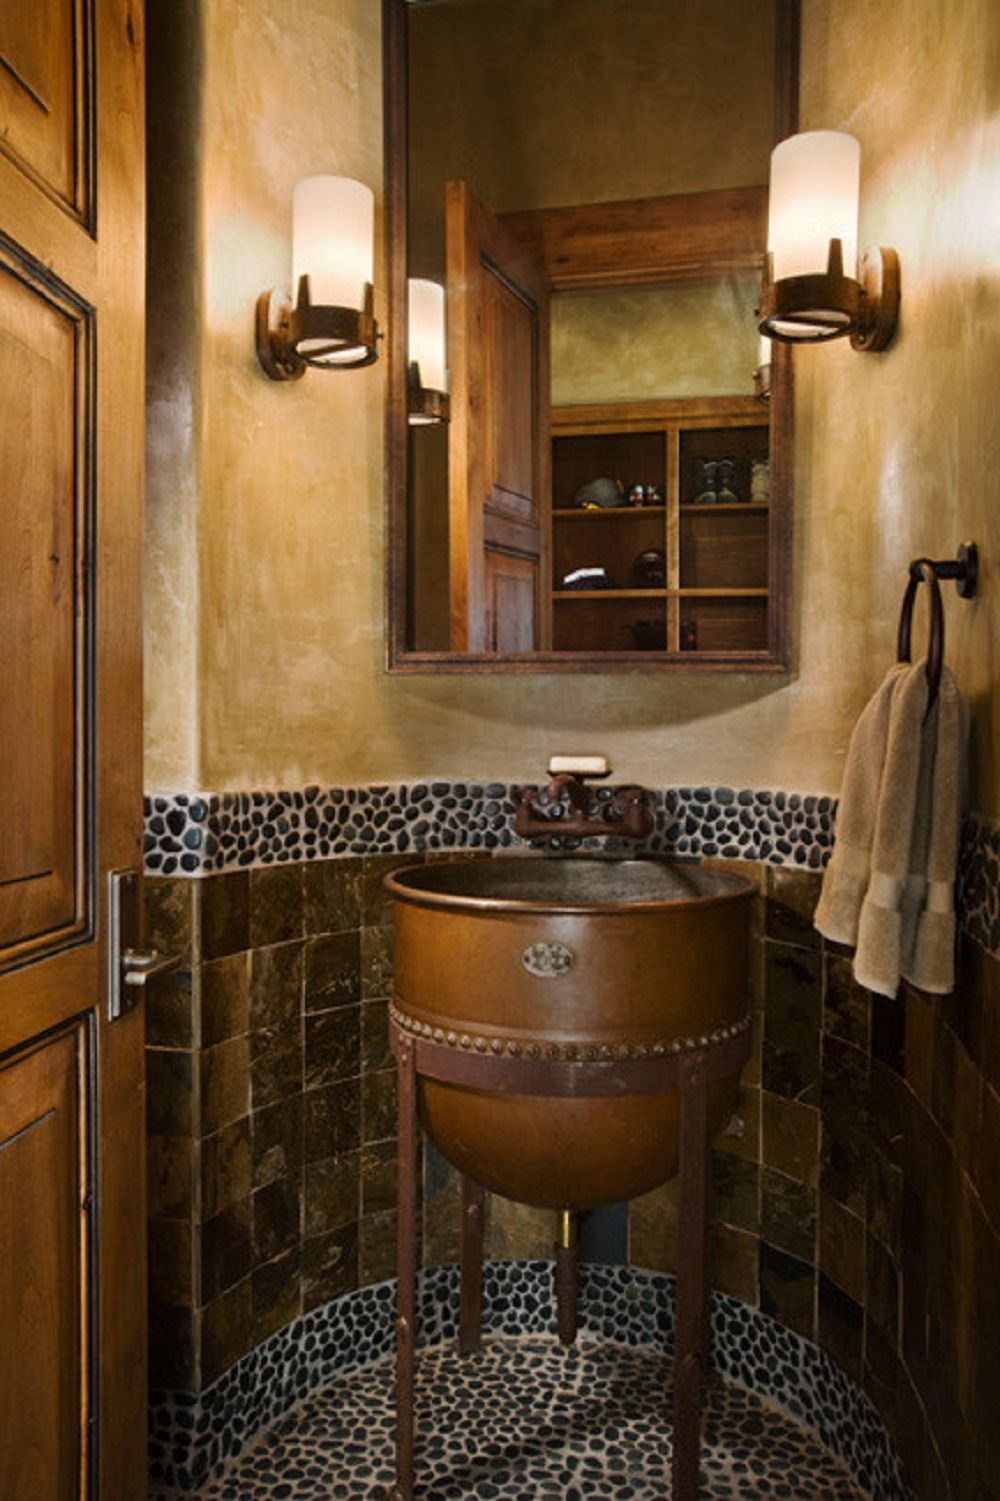 Unique Bathroom Sink Basin with Natural Stone Wall | peinture ...